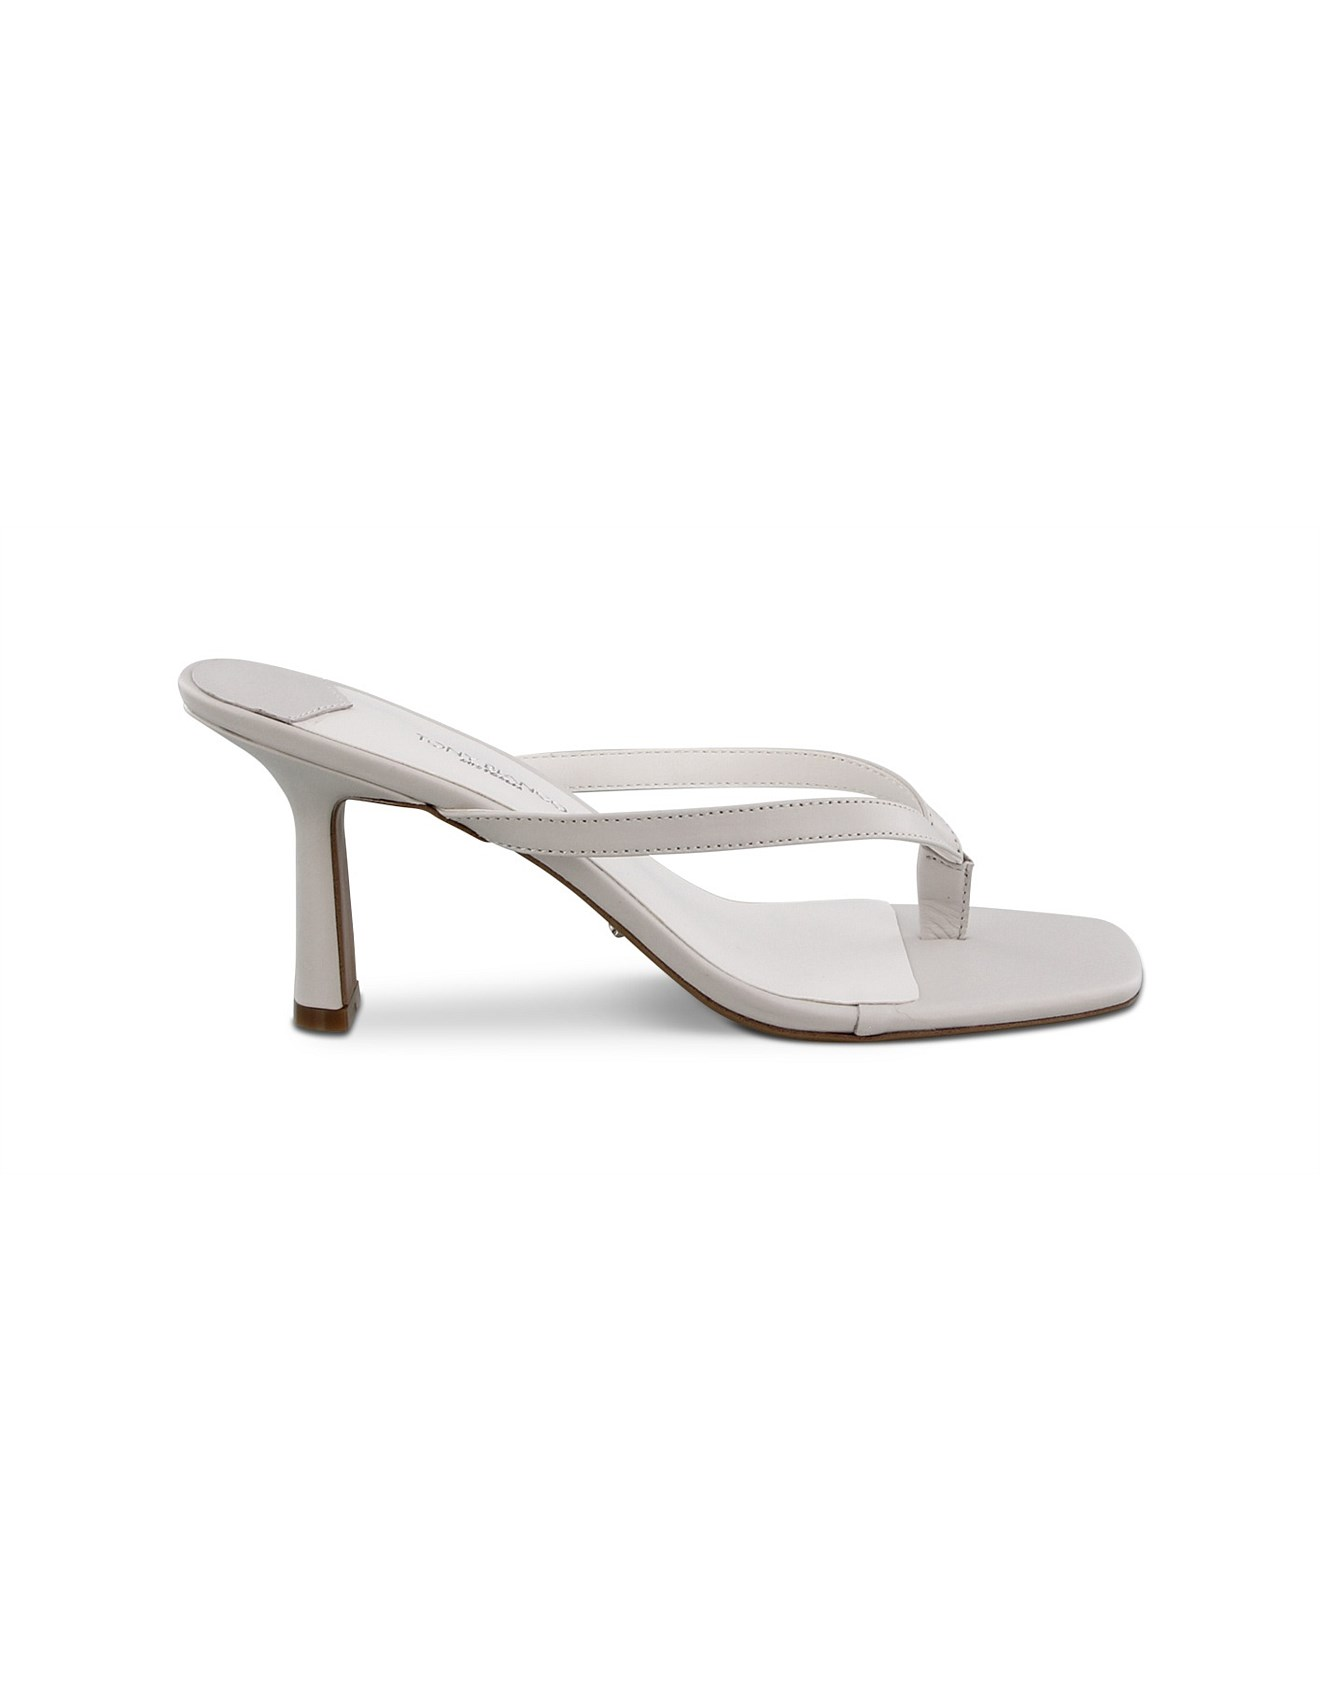 Baye by Tony Bianco, available on zappos.com for $149.95 Kendall Jenner Shoes Exact Product